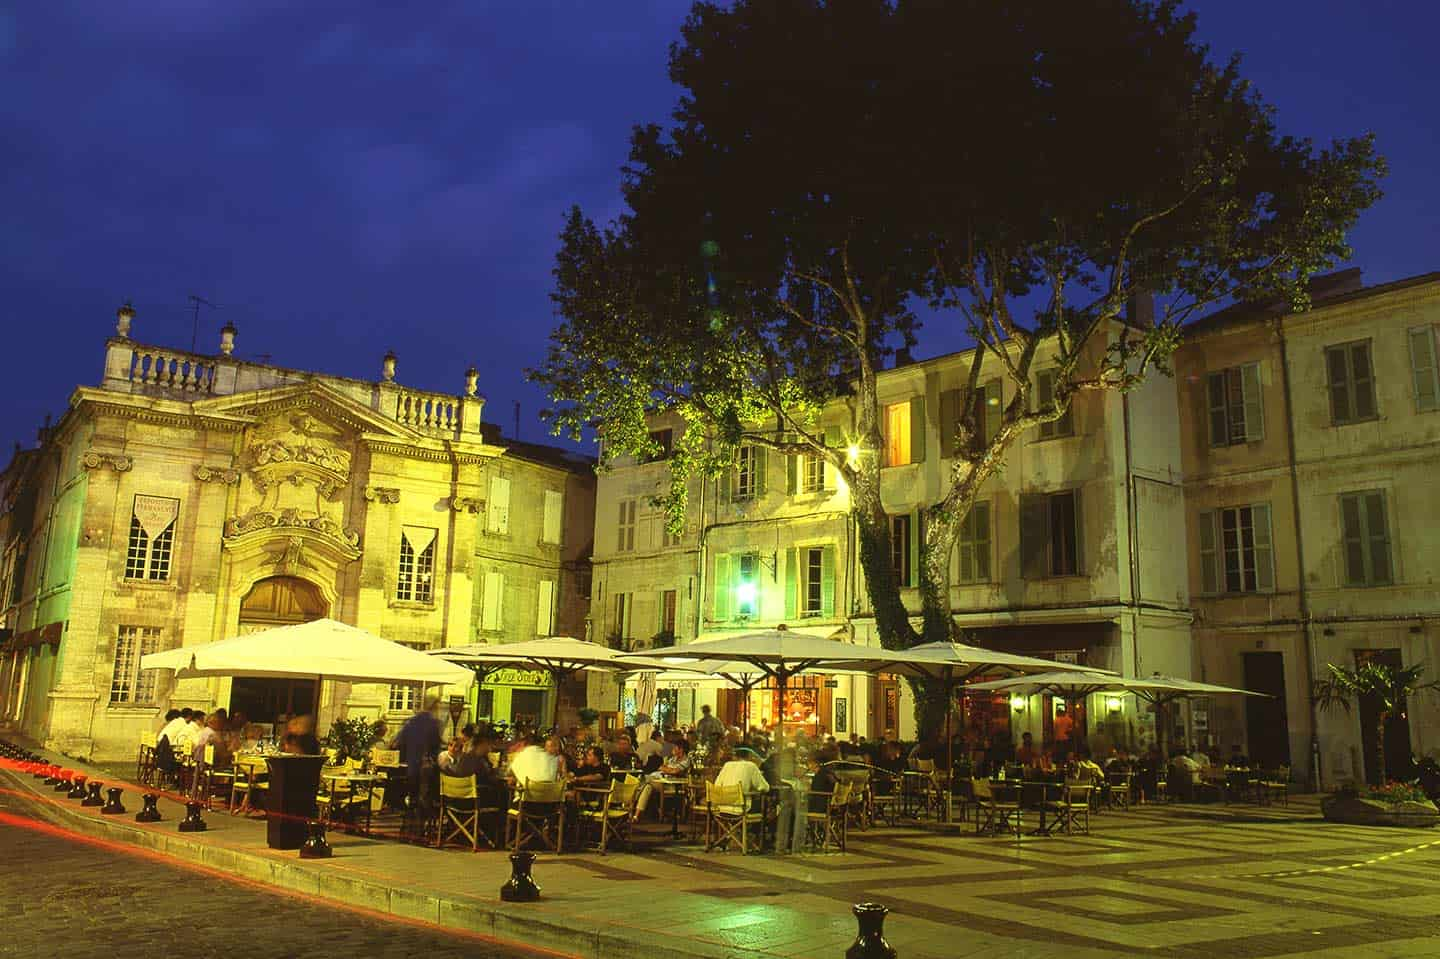 Image of Place Crillon square in Avignon